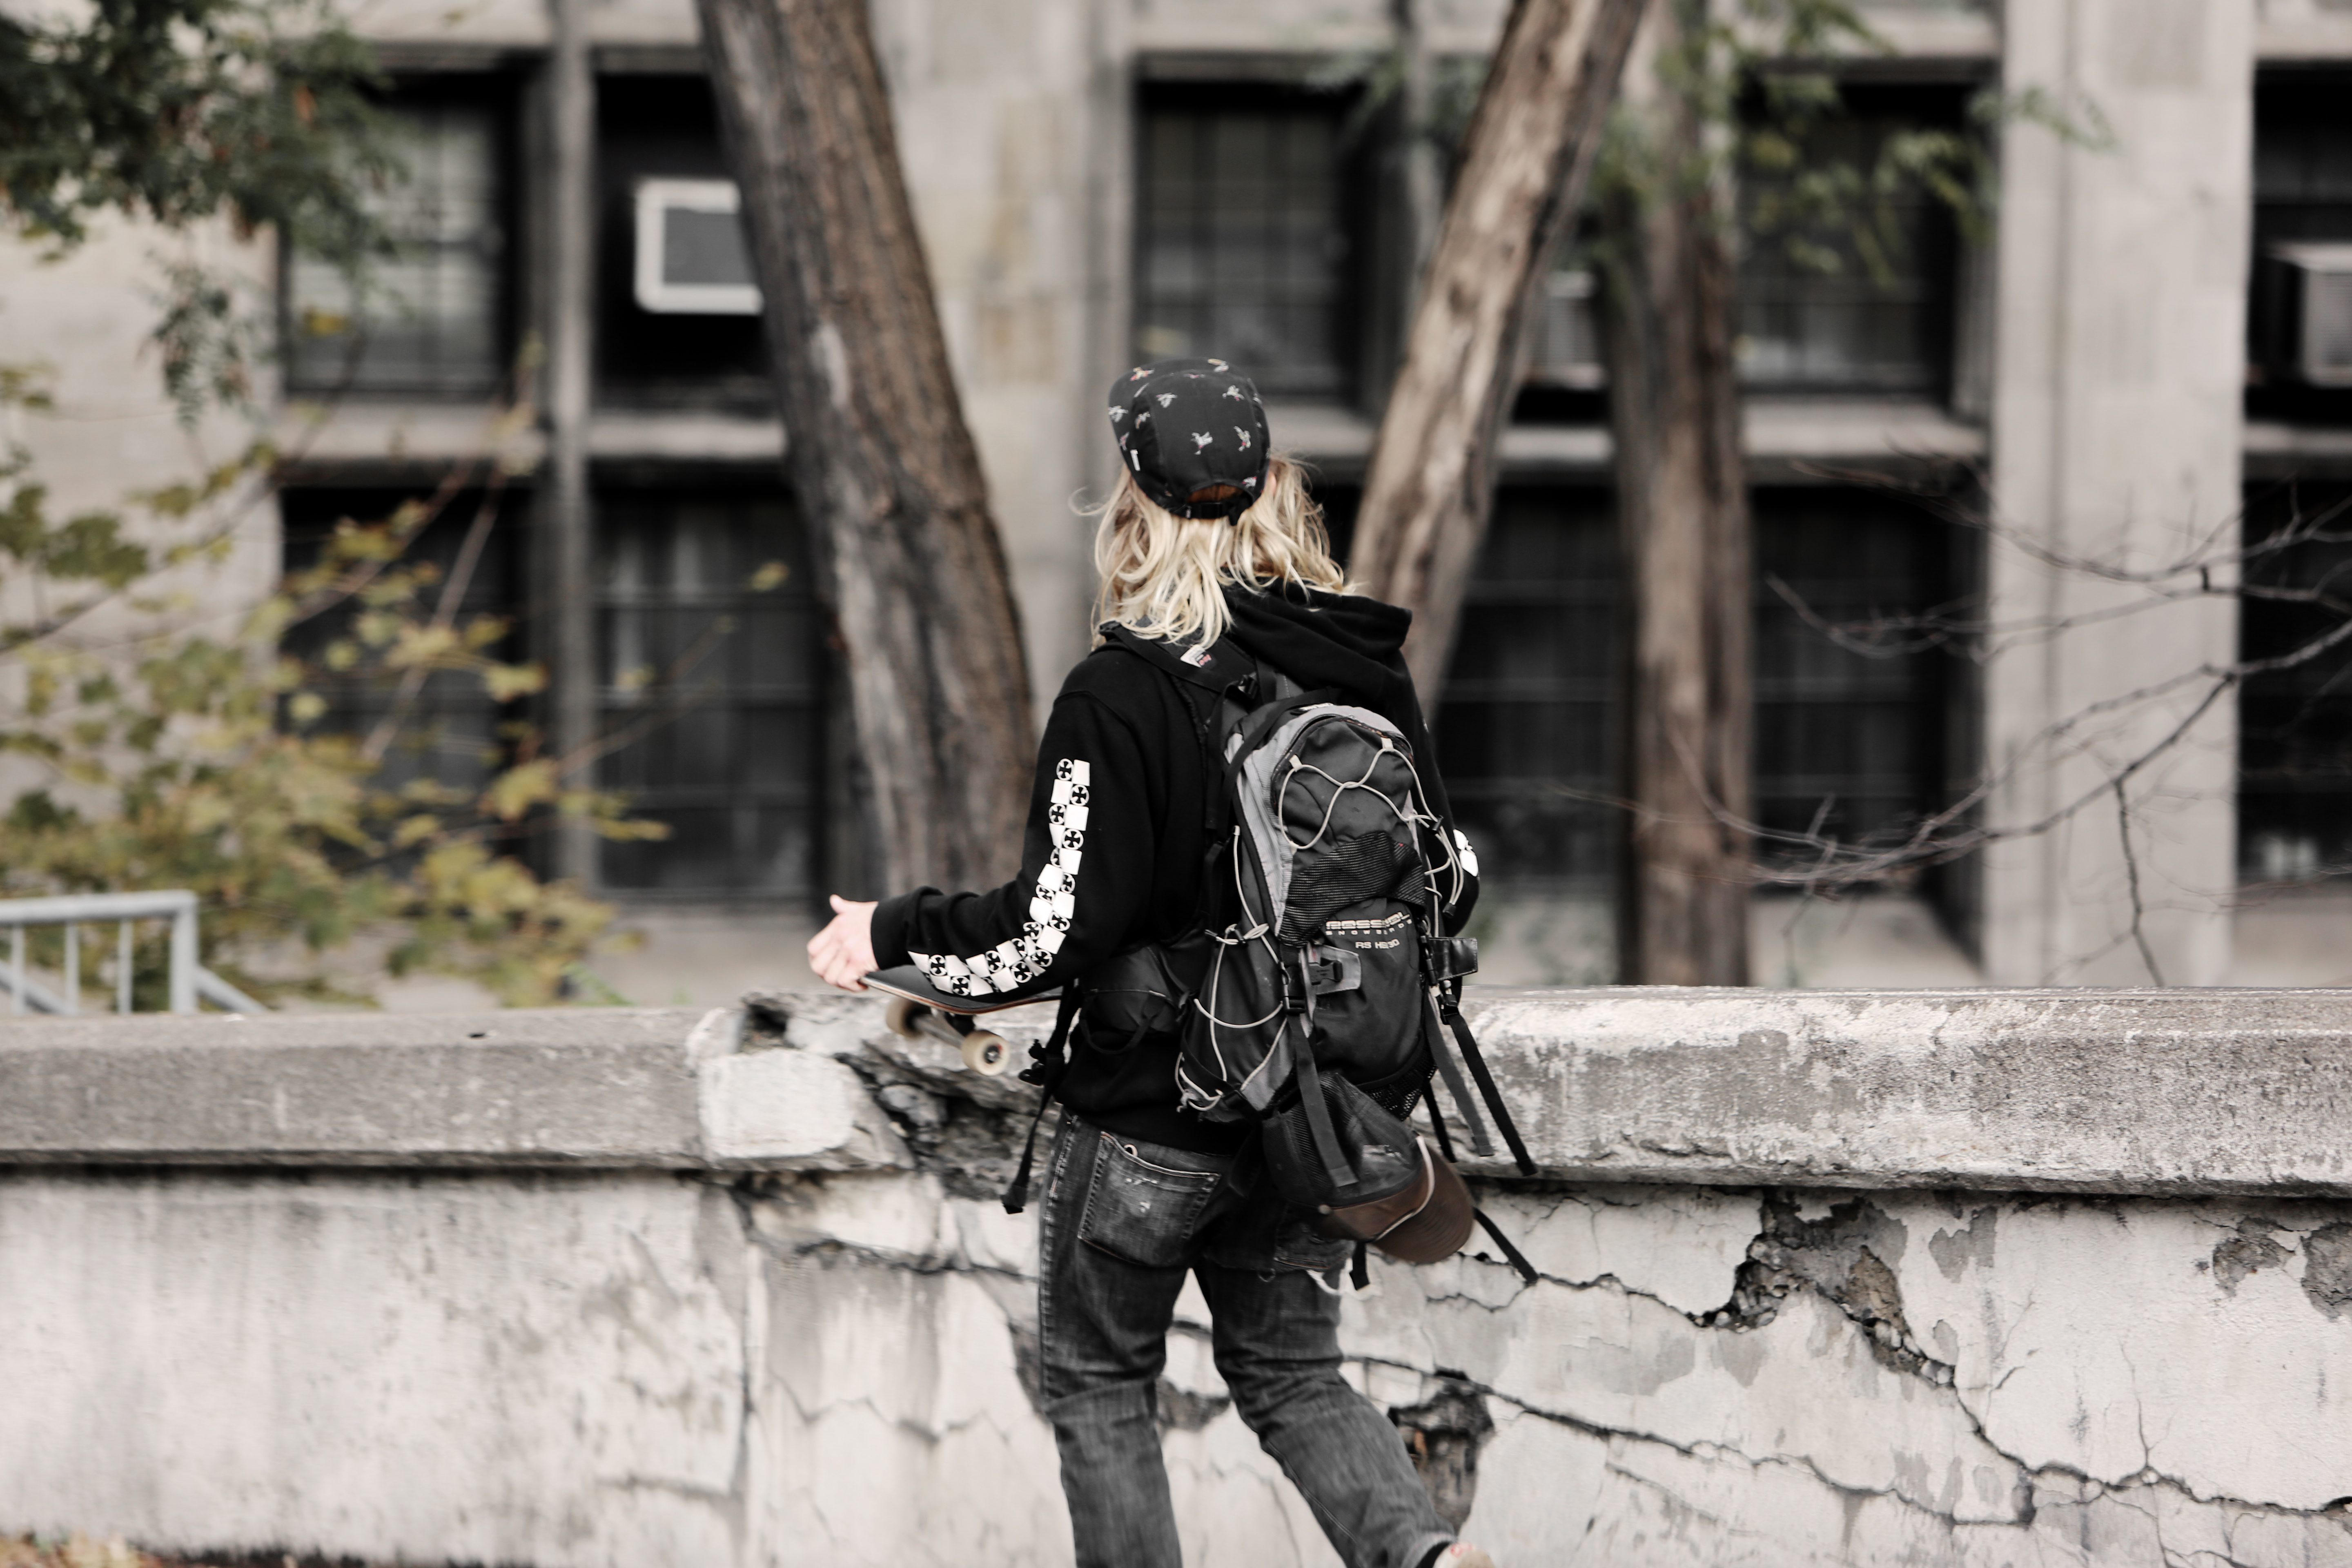 Teenager with long blonde hair, backpack and skateboard walking away from the camera